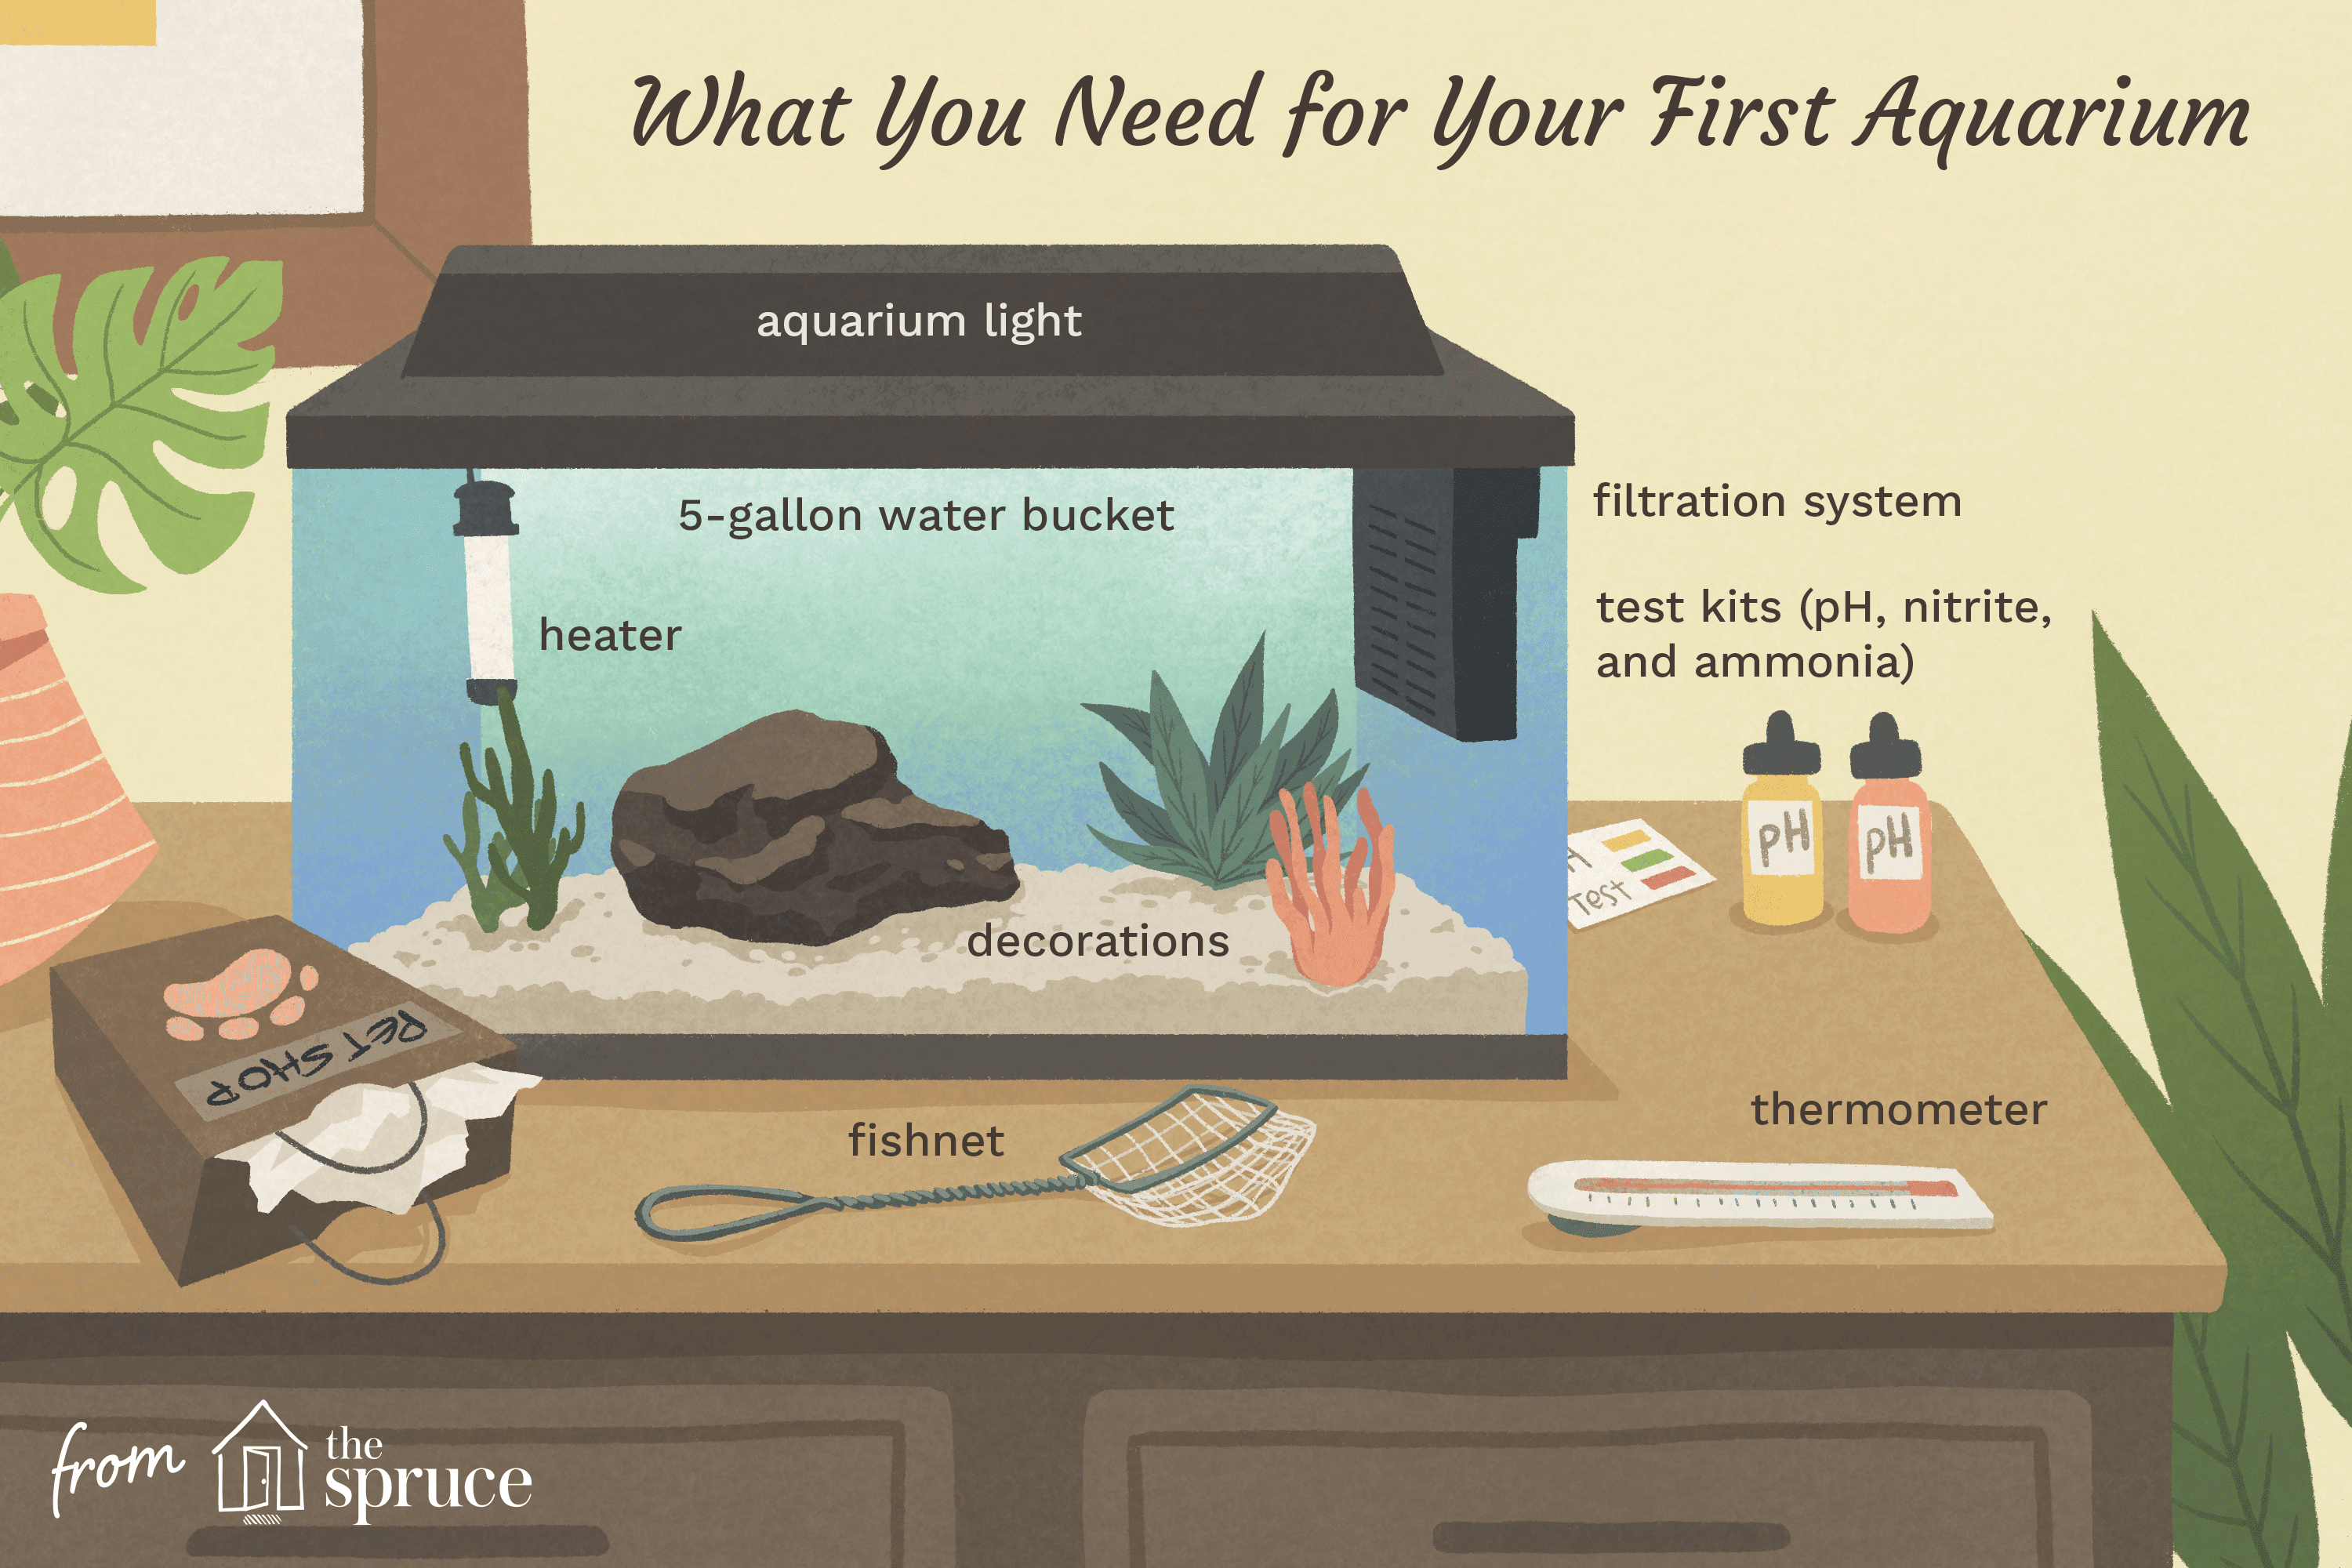 what you need for your first aquarium illustration